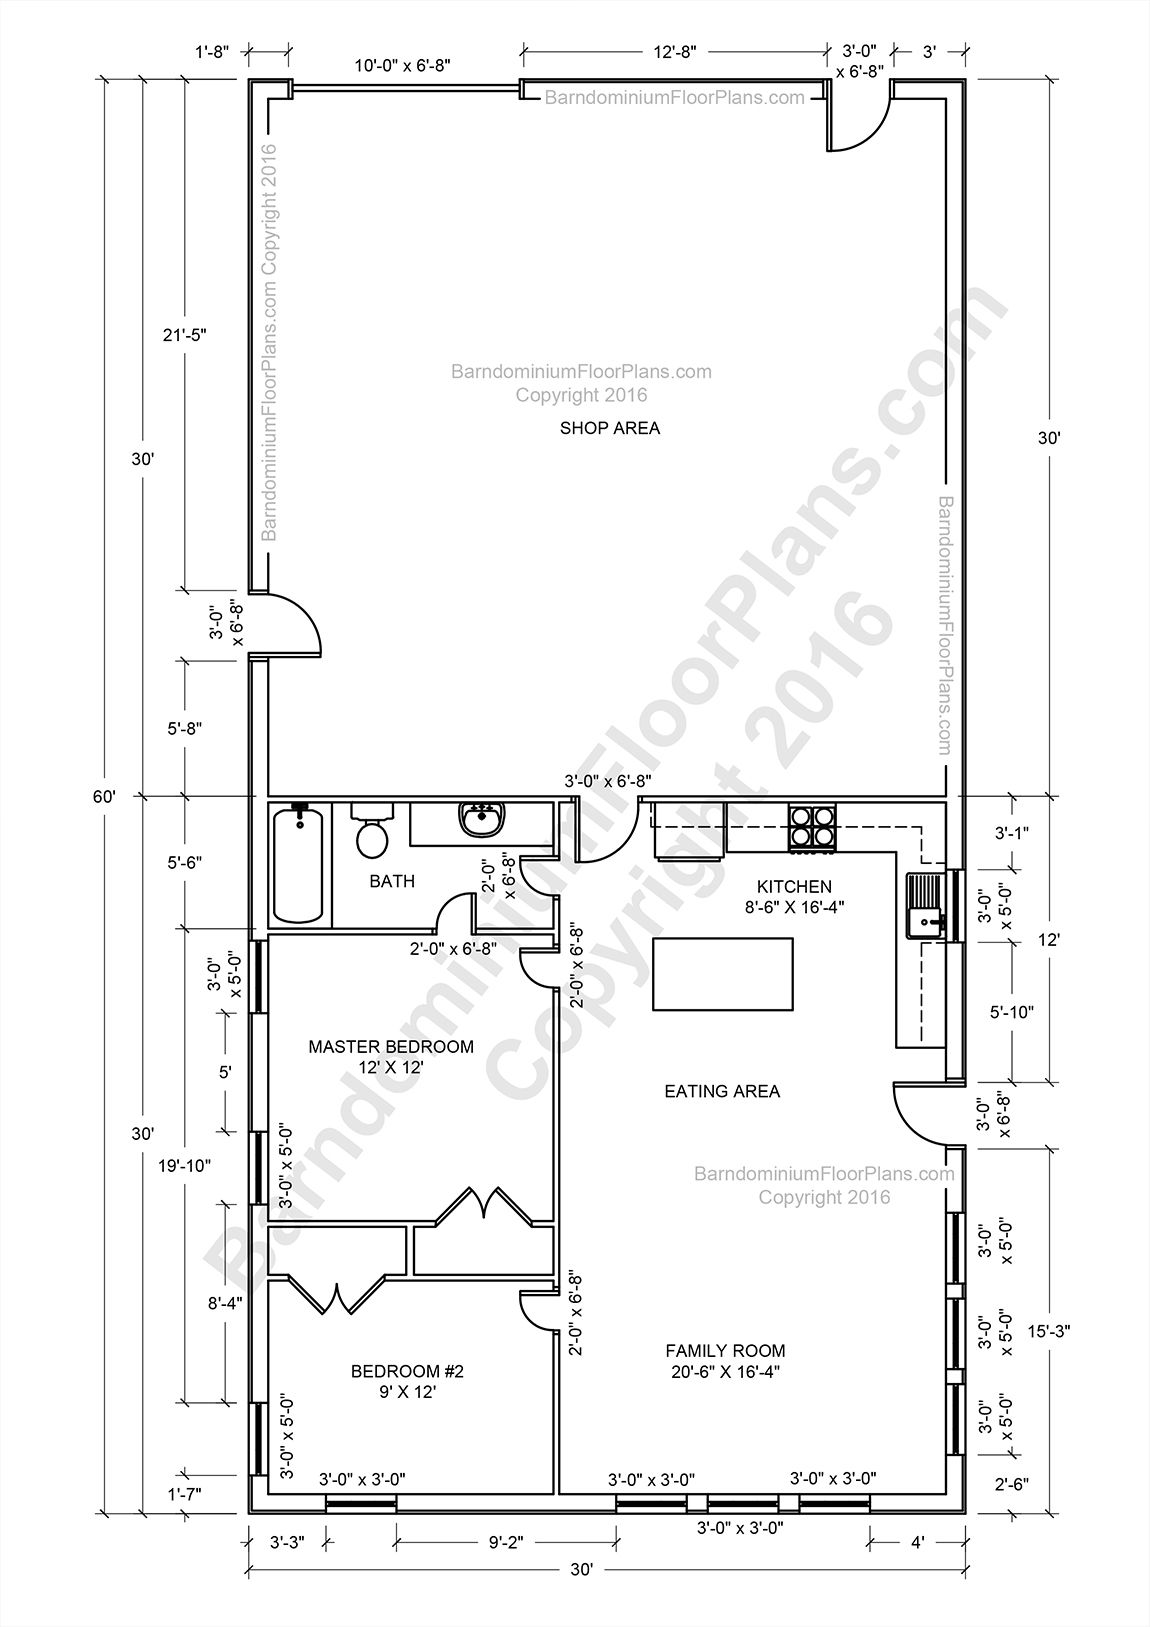 Barndominium floor plans pole barn house plans and metal for Pole barn homes plans and prices